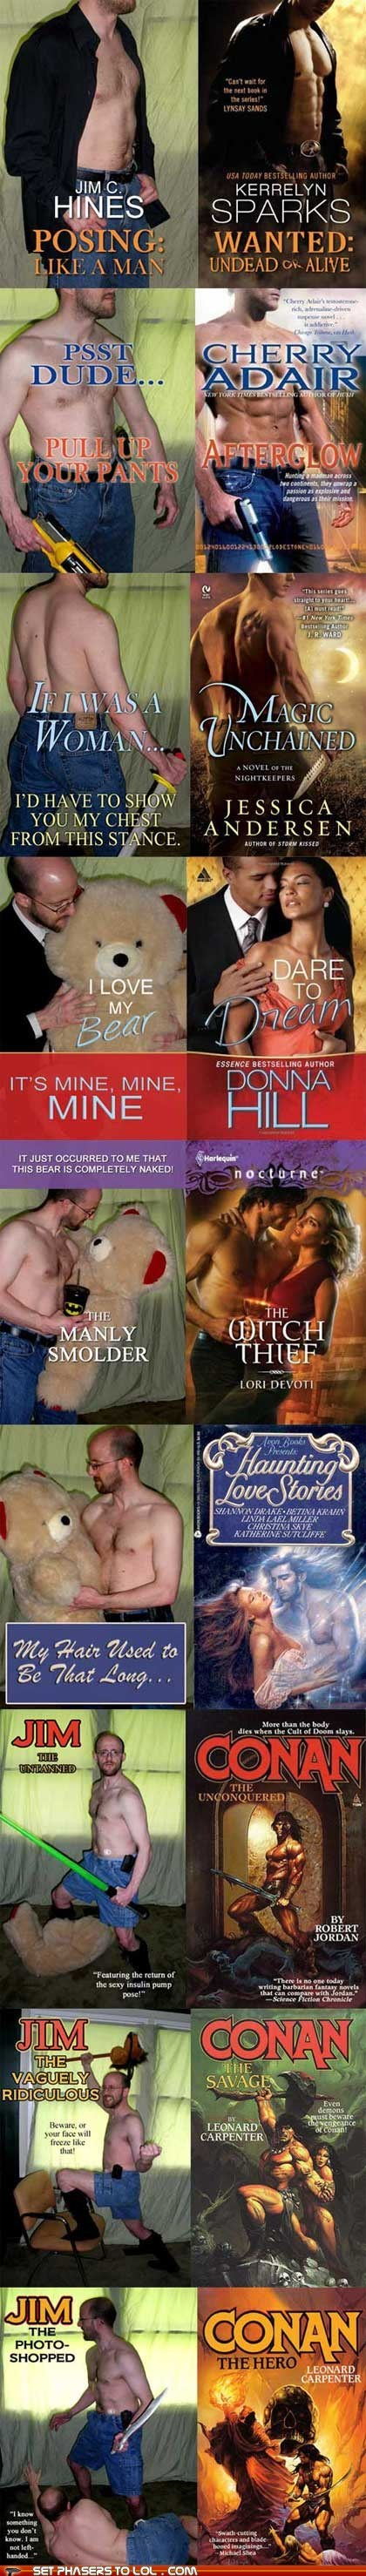 author,Awkward,best of the week,book covers,books,conan,fabio,fantasy,posing,romance novels,shirtless men